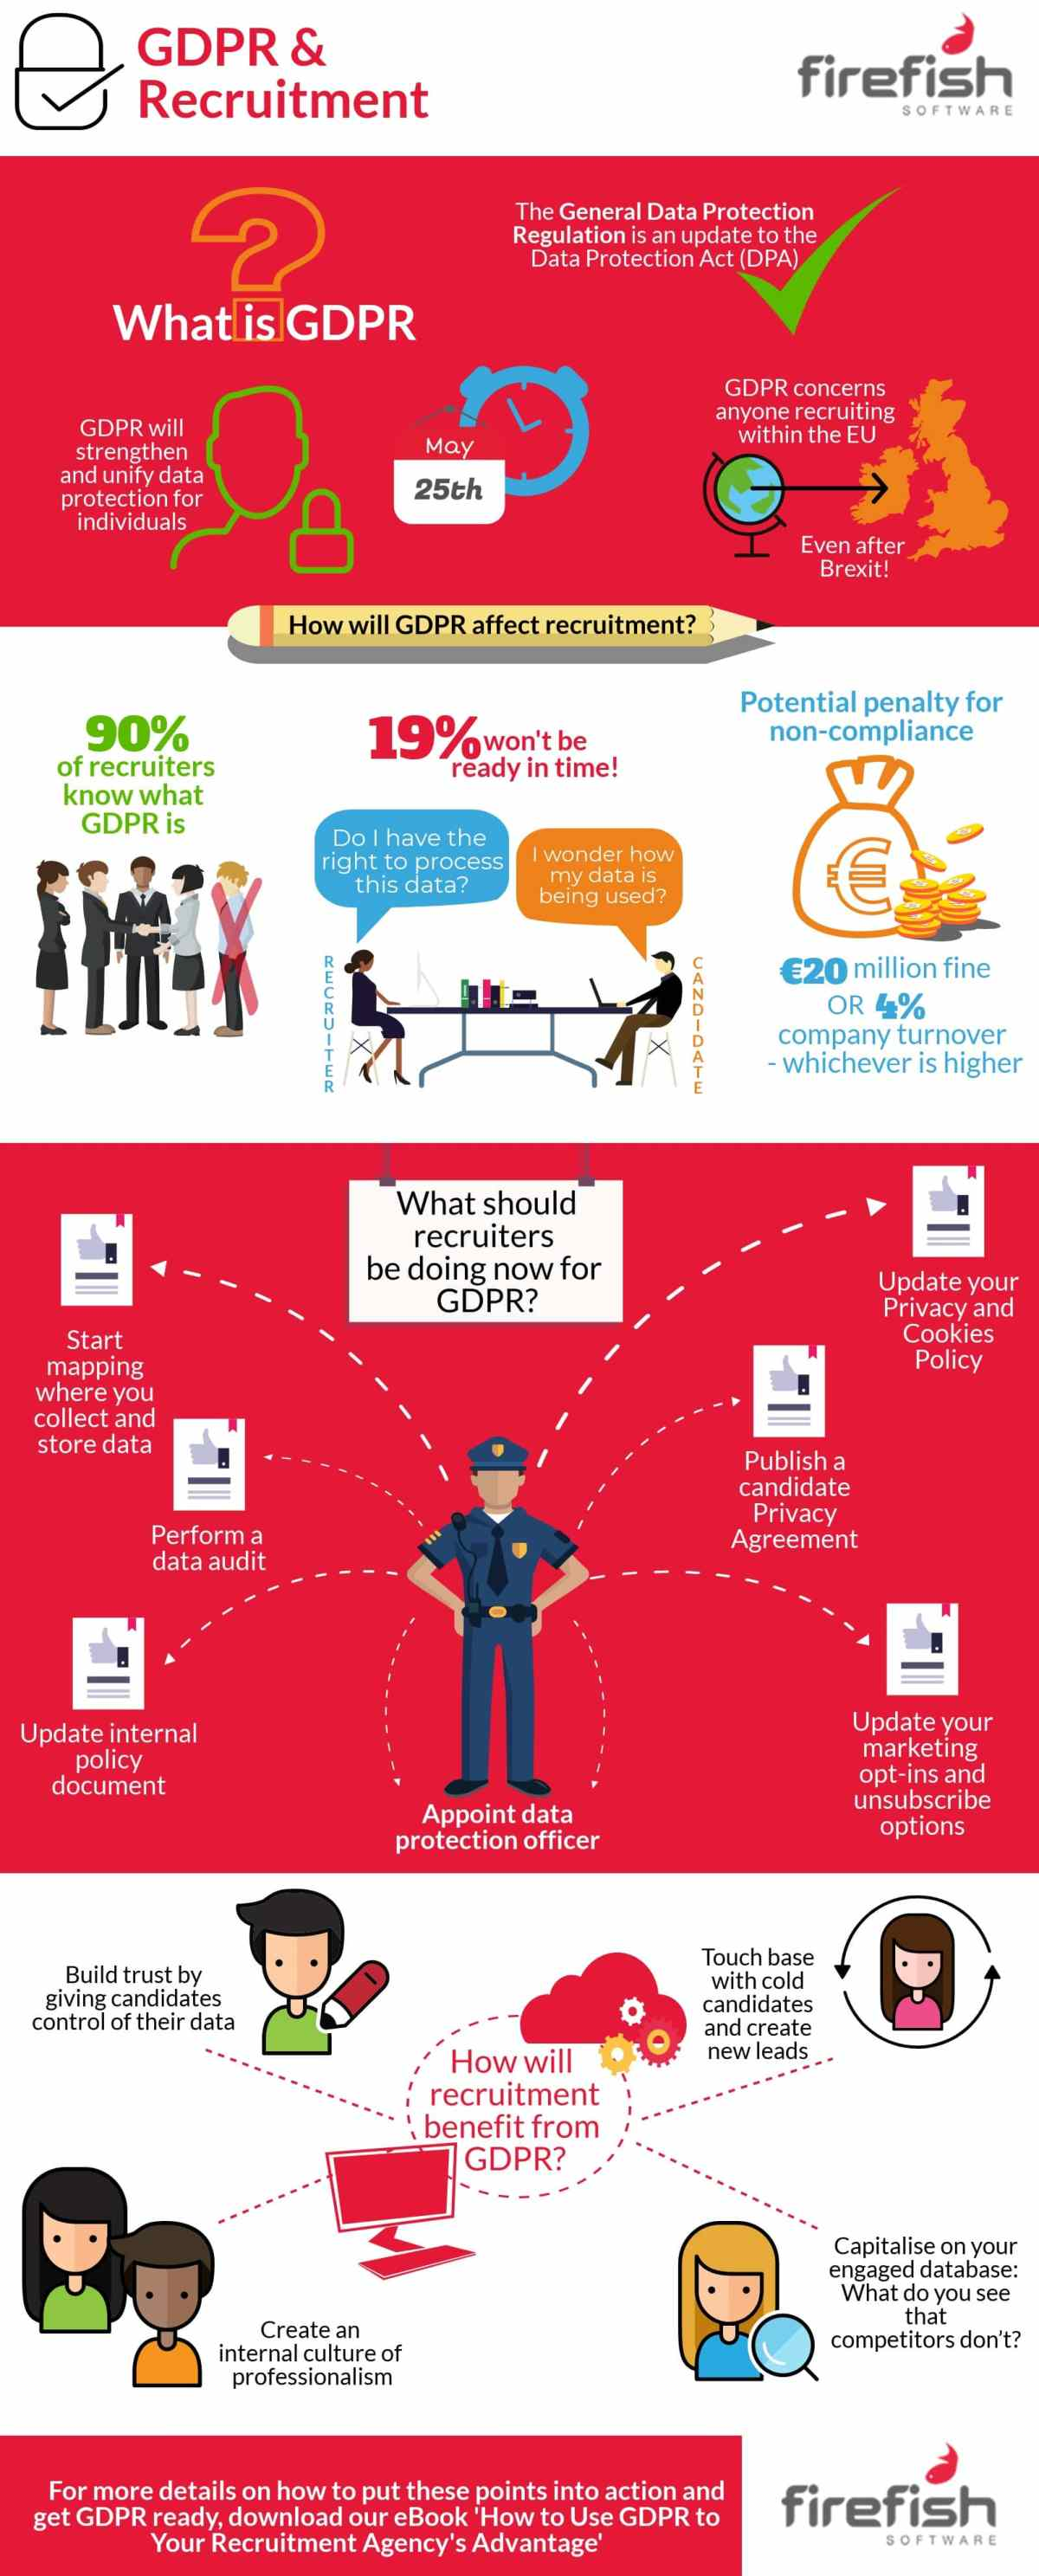 An Infographic showing facts about GDPR by Firefish Software